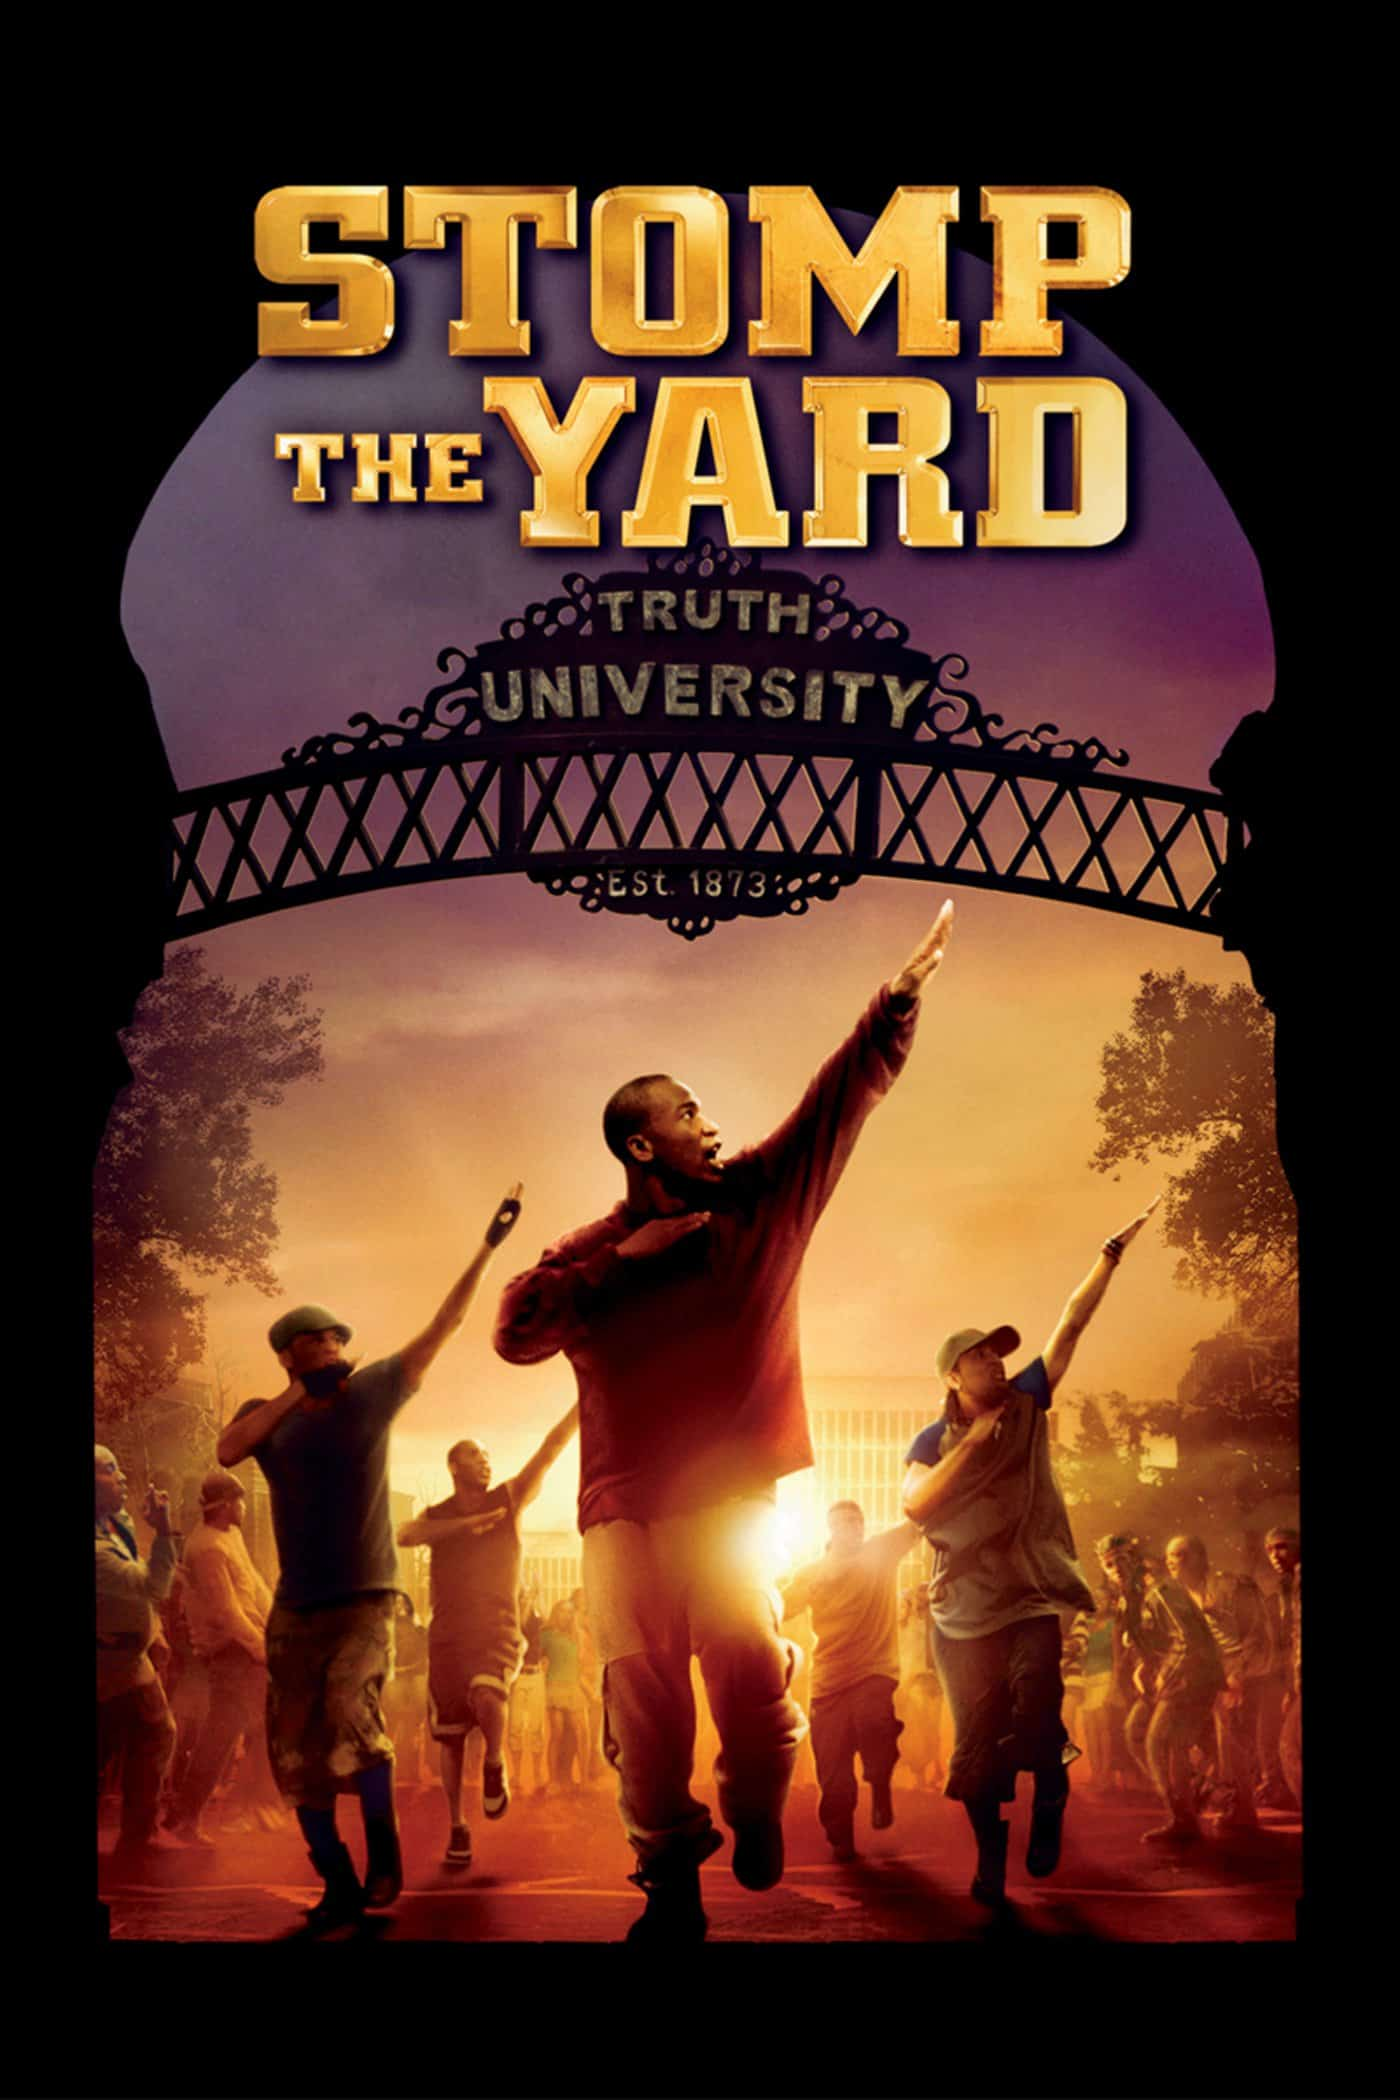 Stomp the Yard, 2007